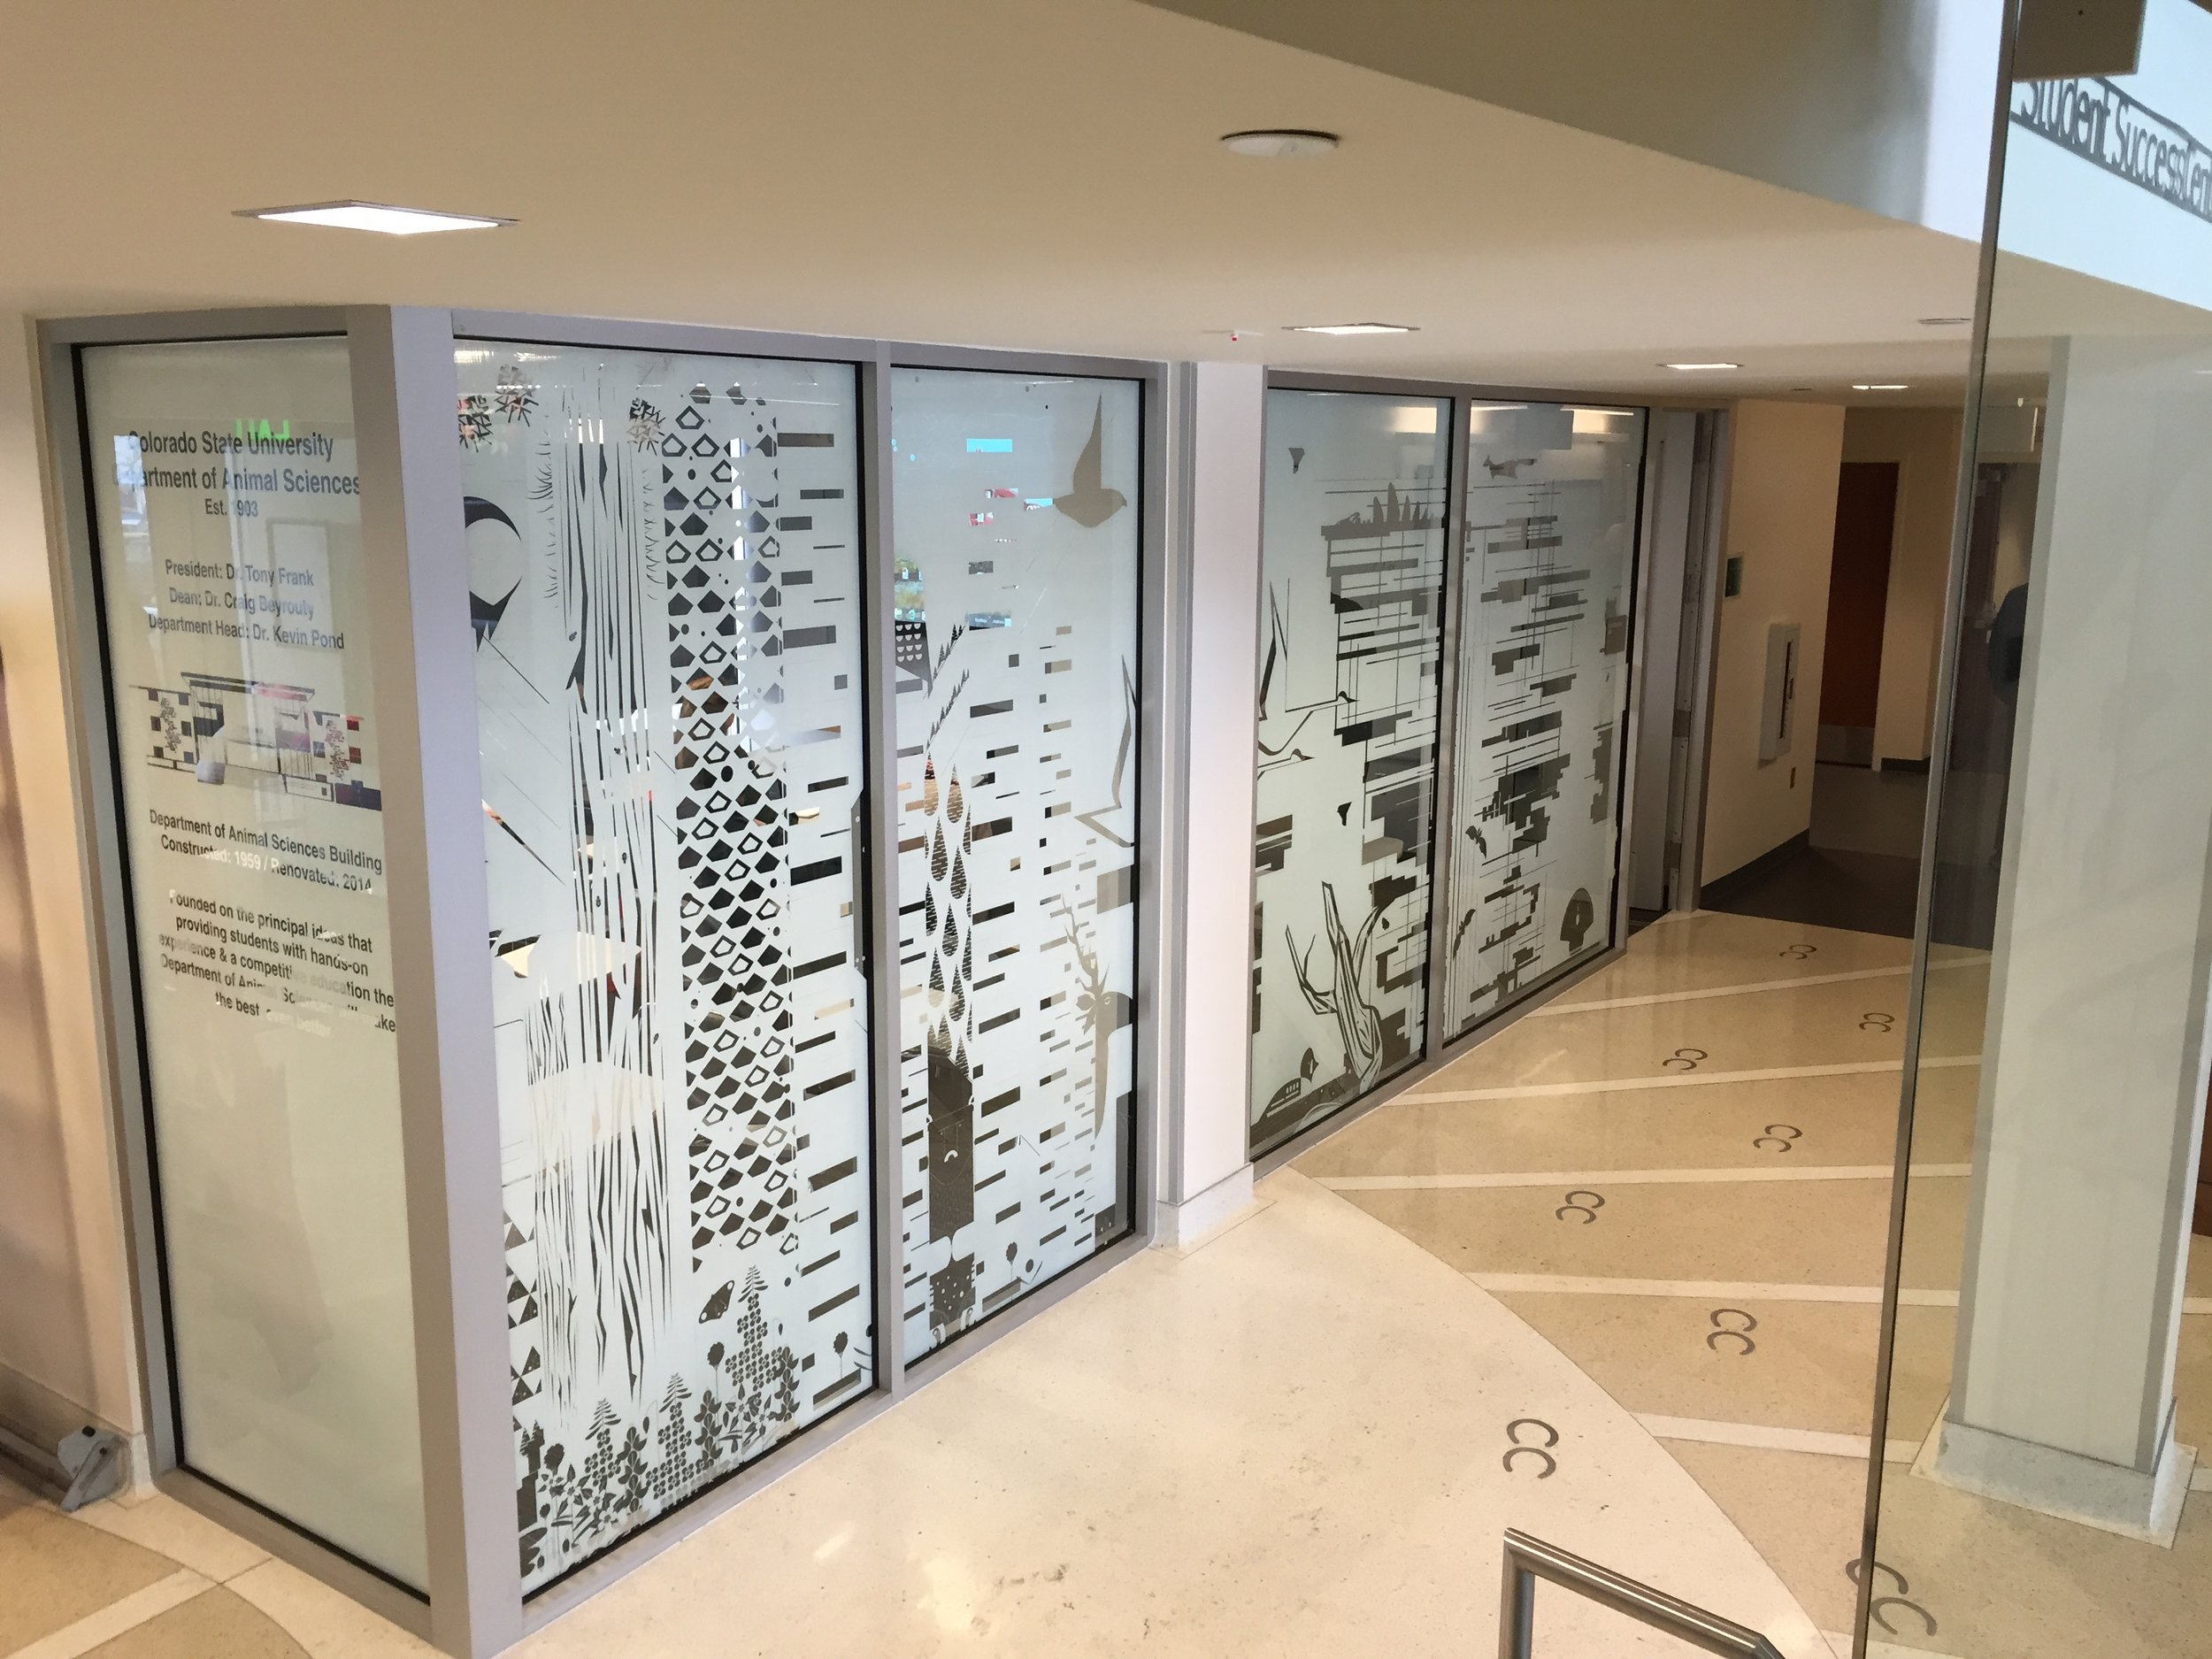 Colorado State University wanted a custom look for their Agricultural building. A student designed this pattern for Solar Vision to print and install.